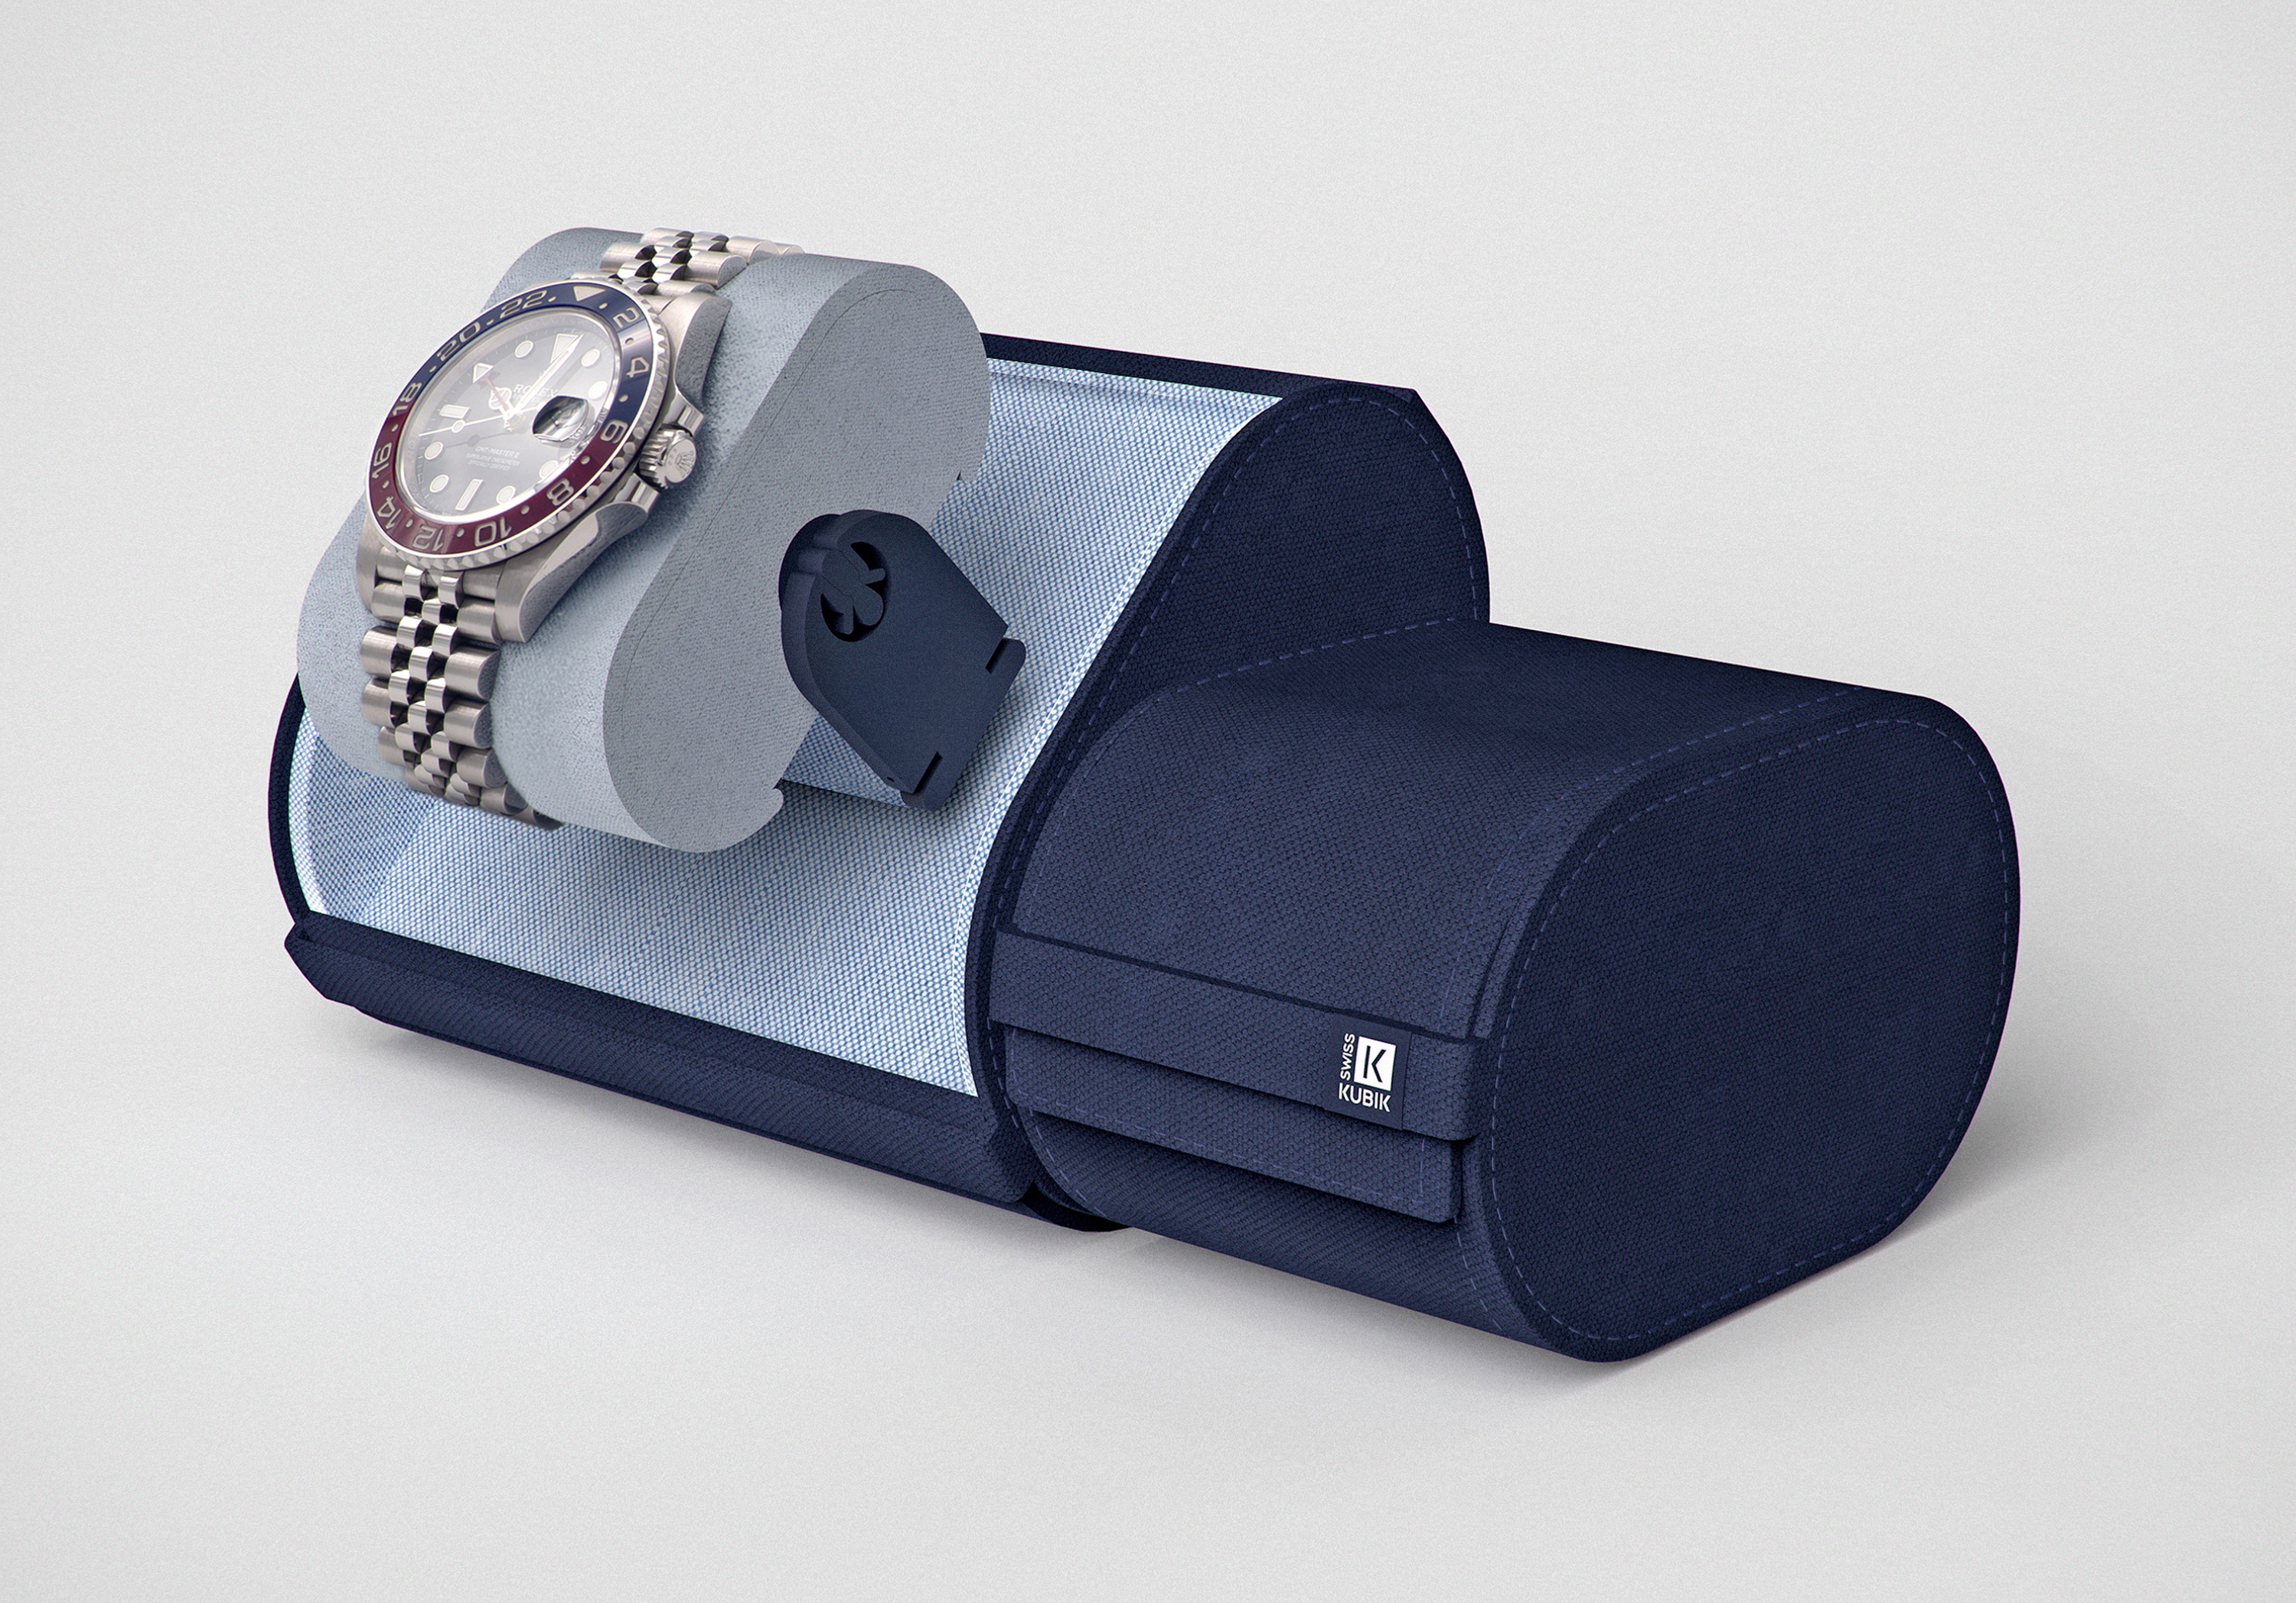 SWISSKUBIK LAUNCHES THE TRAVELBOX – THE FIRST TRAVEL WATCH WINDER CASE!